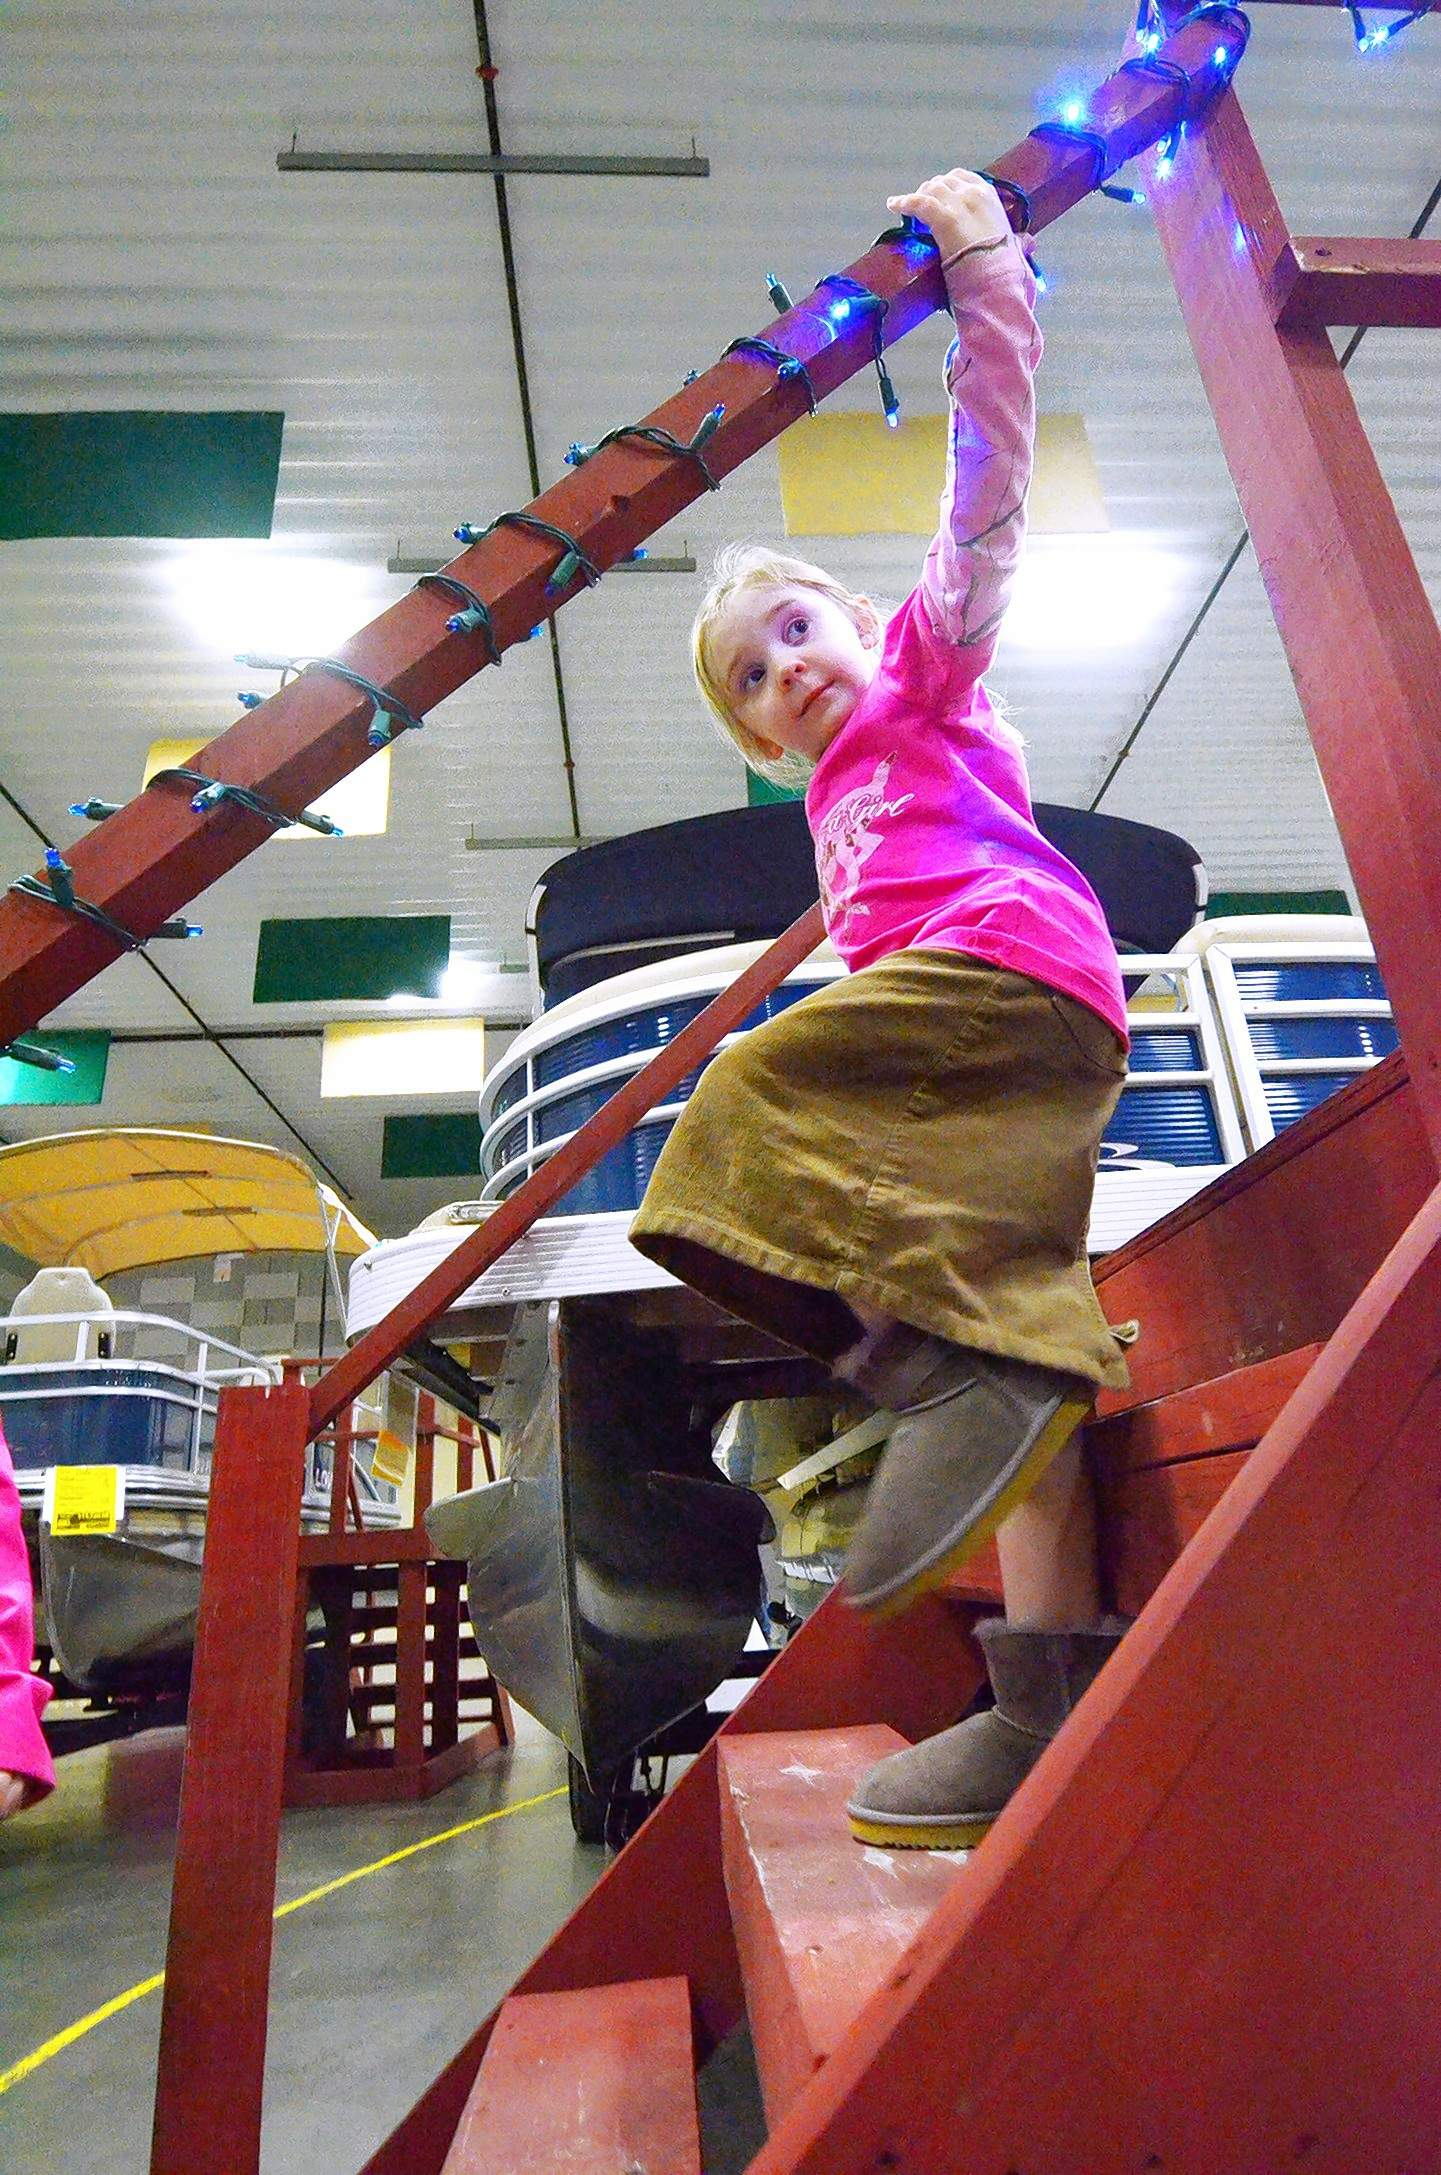 Four-year-old Sarah Lessar carefully makes her way down the steps leading to a new pontoon boat that she and her mother had just checked out at the show.